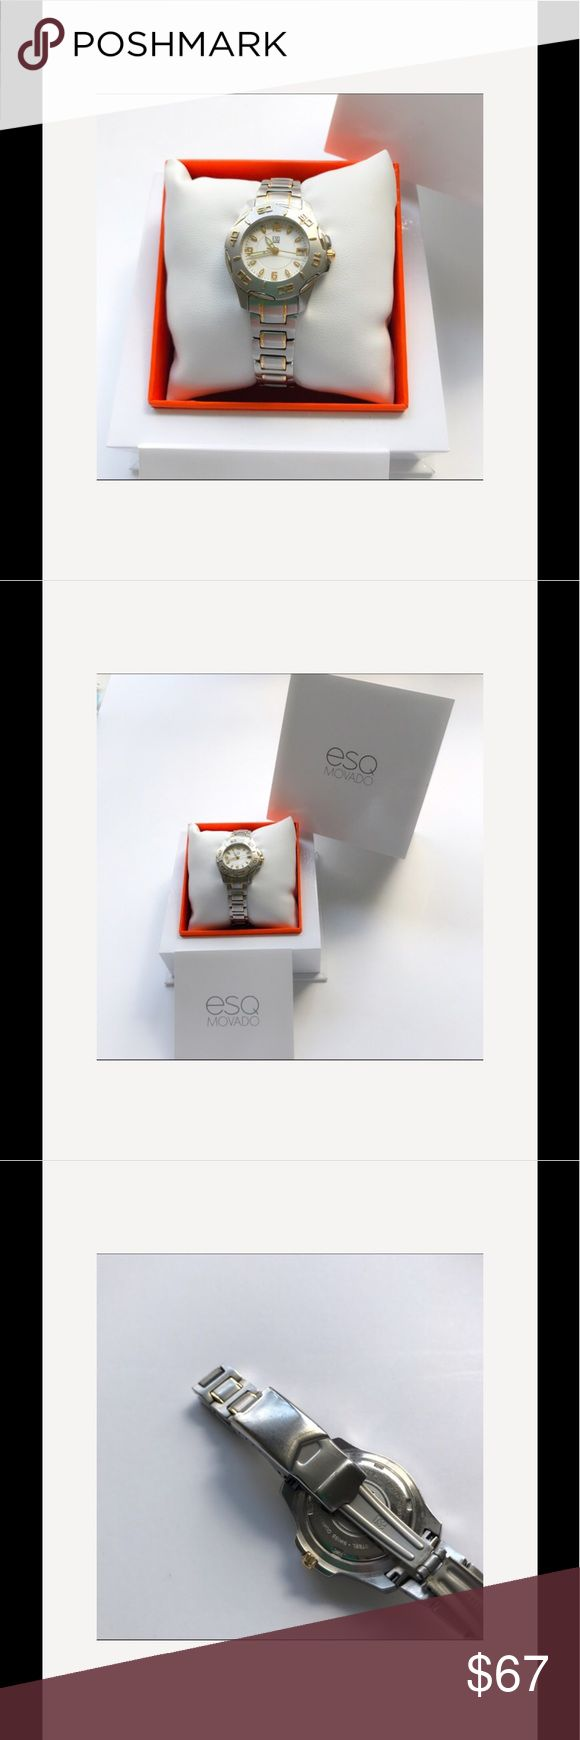 ESQ Movado Ladies 2 tone watch Silver with Gold Ladies ESQ Movado watch. Worn very few times. Has battery and is working. Clasp shows scuffing from normal wear. Has date window  and second hand. Stainless steel with gold colored accents. 6.5 inches around. Comes with original box Accessories Watches